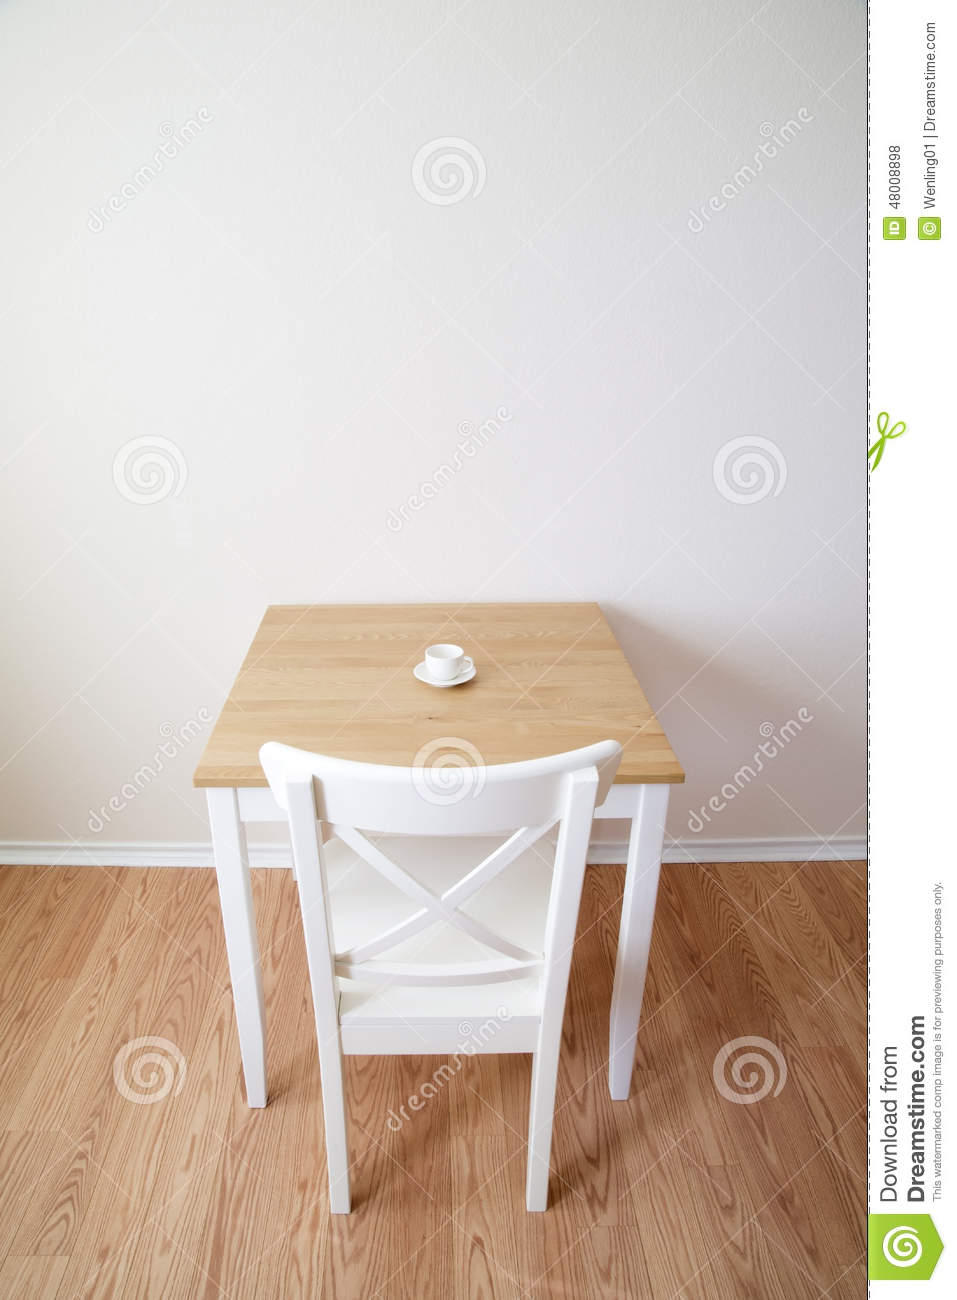 single table chair and cup stock photo image of flooring rh dreamstime com single dressing table chair single dressing table chair